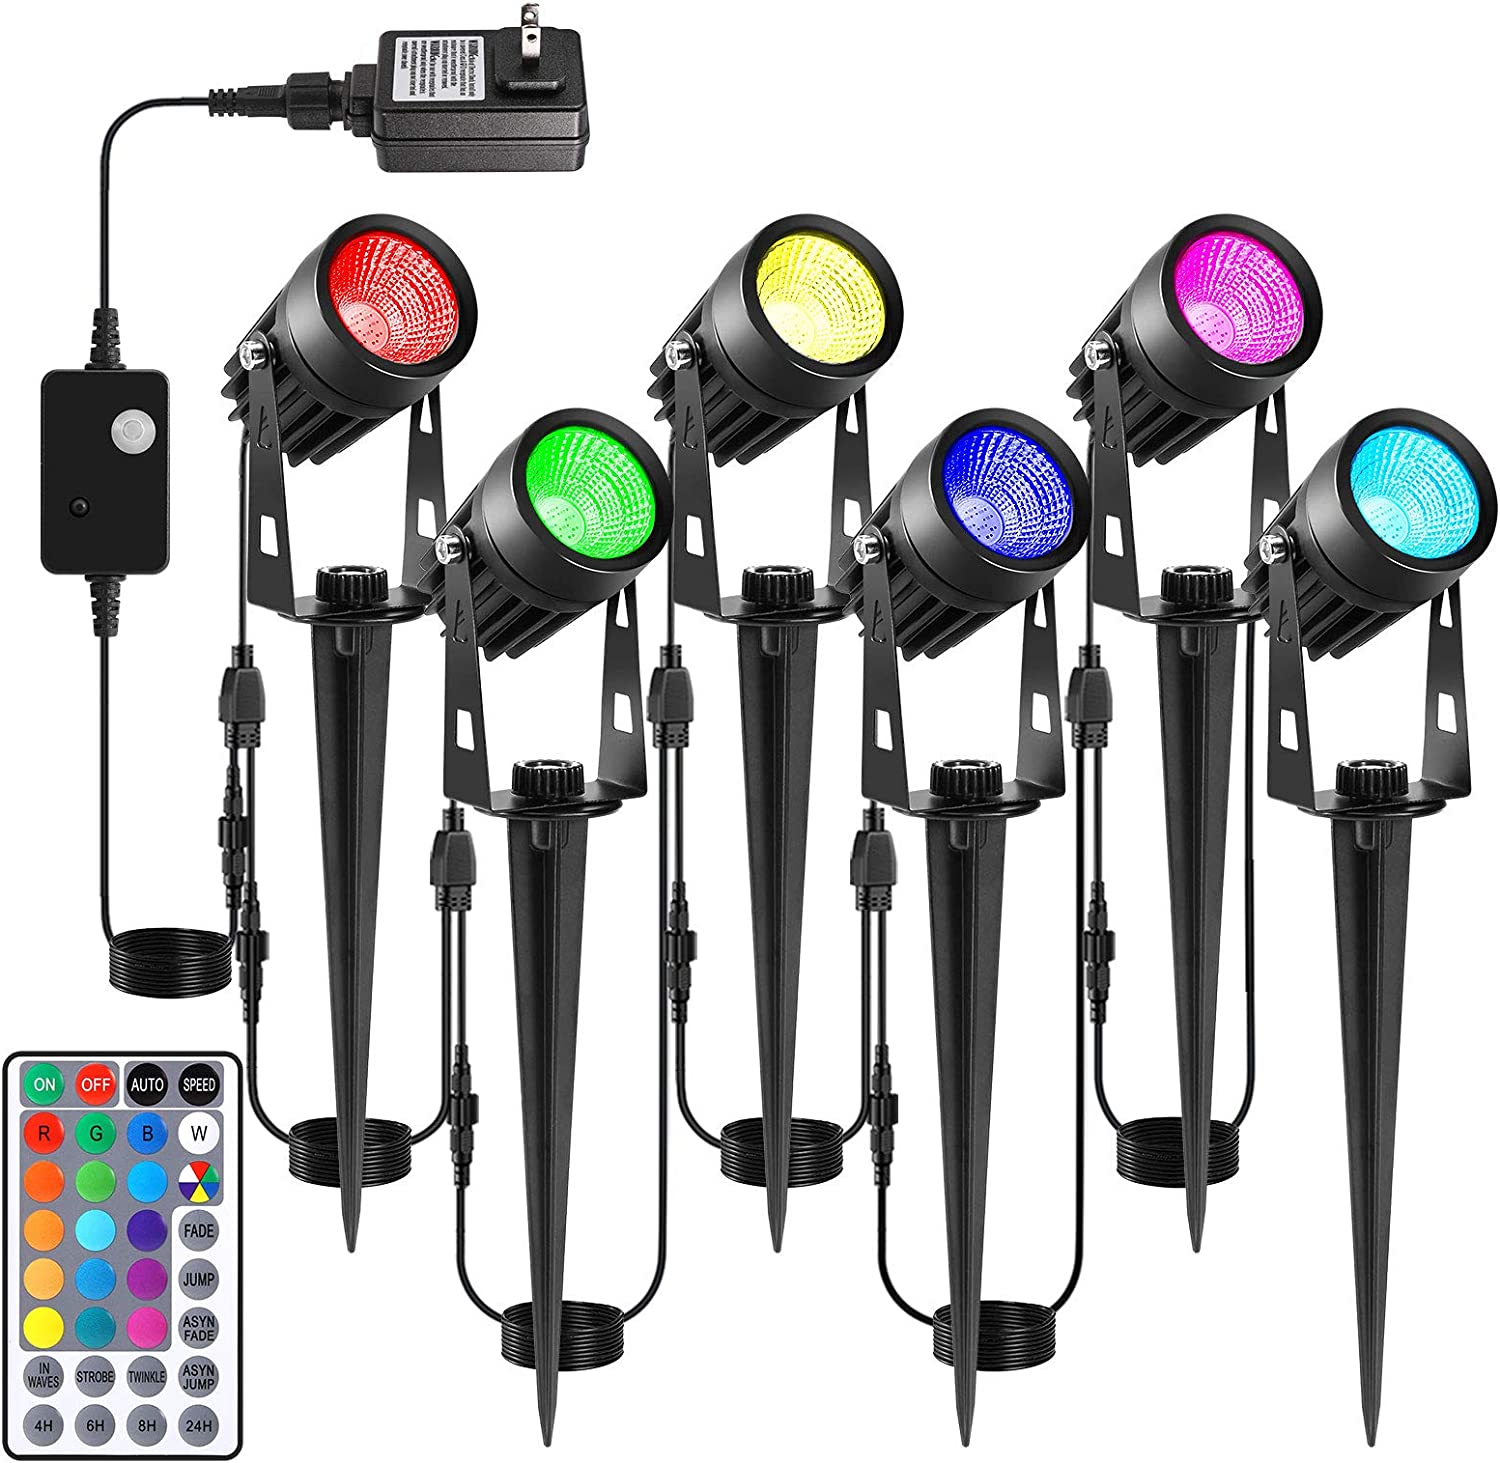 ECOWHO Low Voltage Landscape Lights, 65ft/20m 12V LED RGB Landscape Lighting with Remote Timer IP65 Waterproof Outdoor Spotlight Plug-in Color Changing Pathway Lights for Garden Yard Patio (6 Pack)